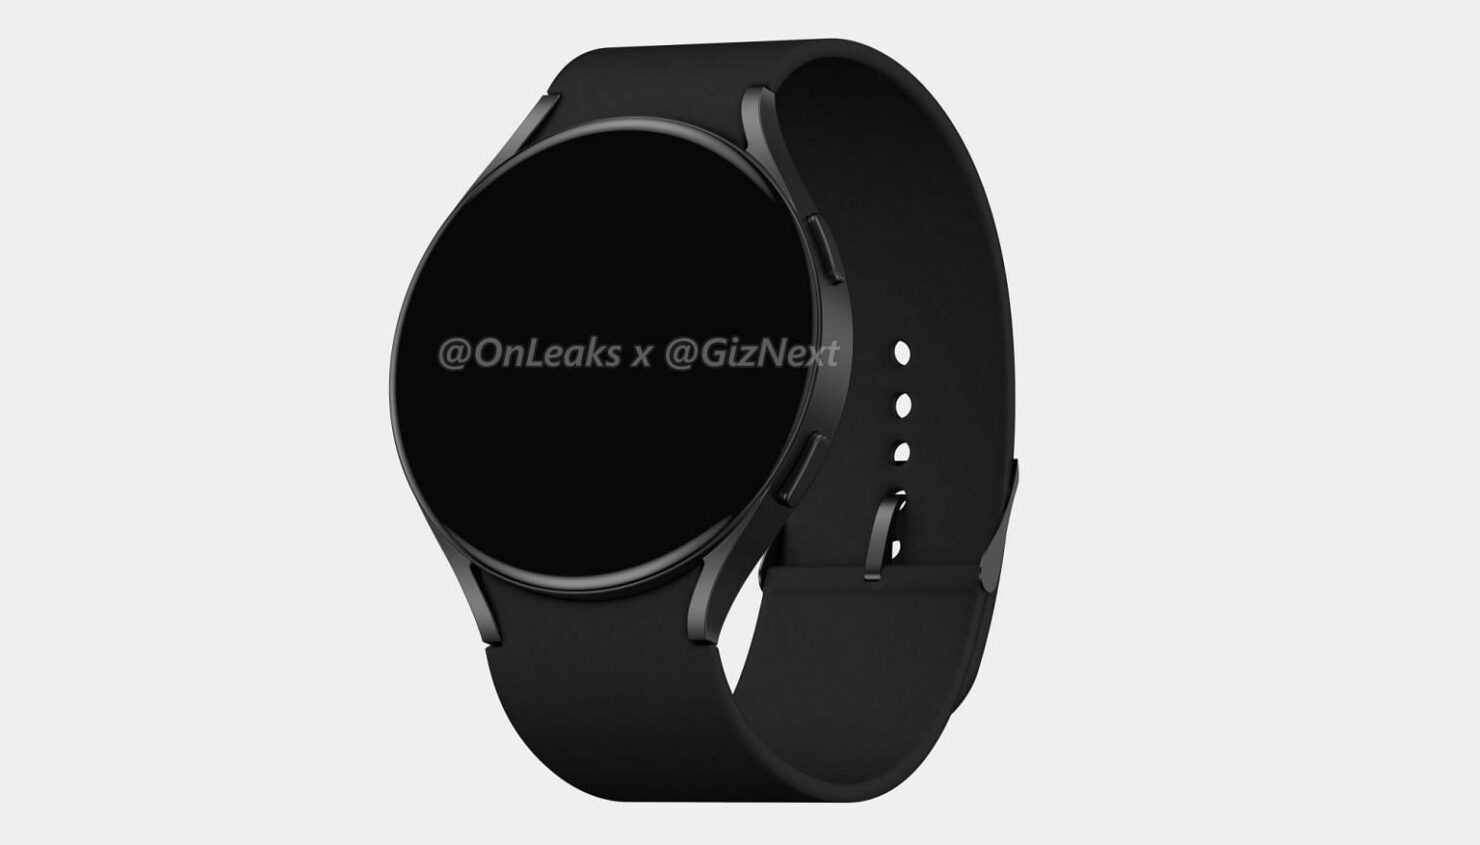 galaxy-watch-active-4-2-scaled-e1624430394475-1536x877